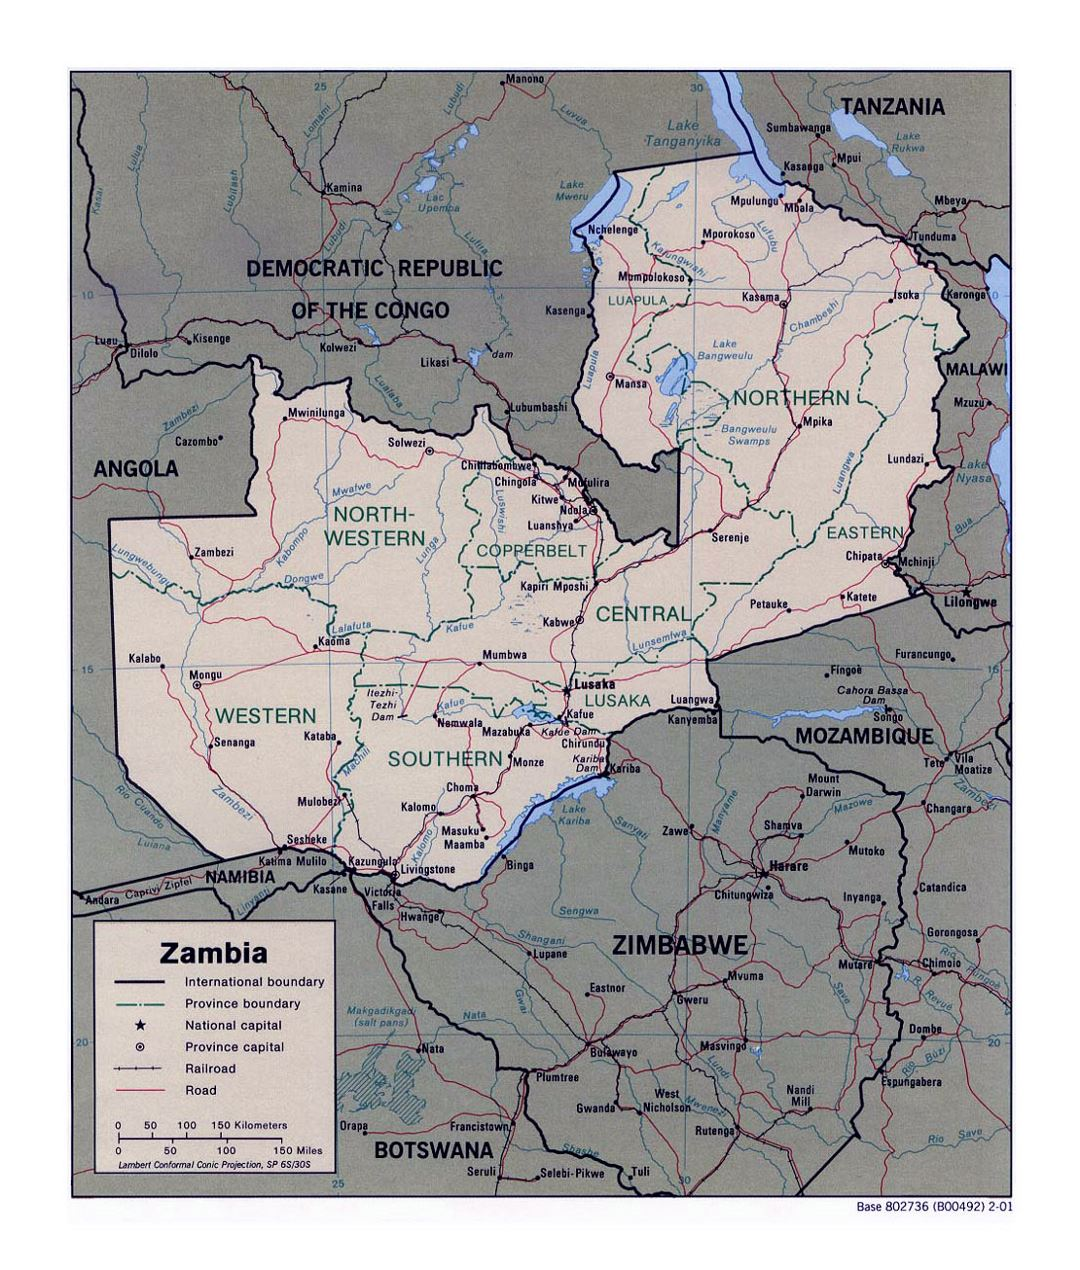 Detailed political and administrative map of Zambia with roads, railroads and major cities - 2001